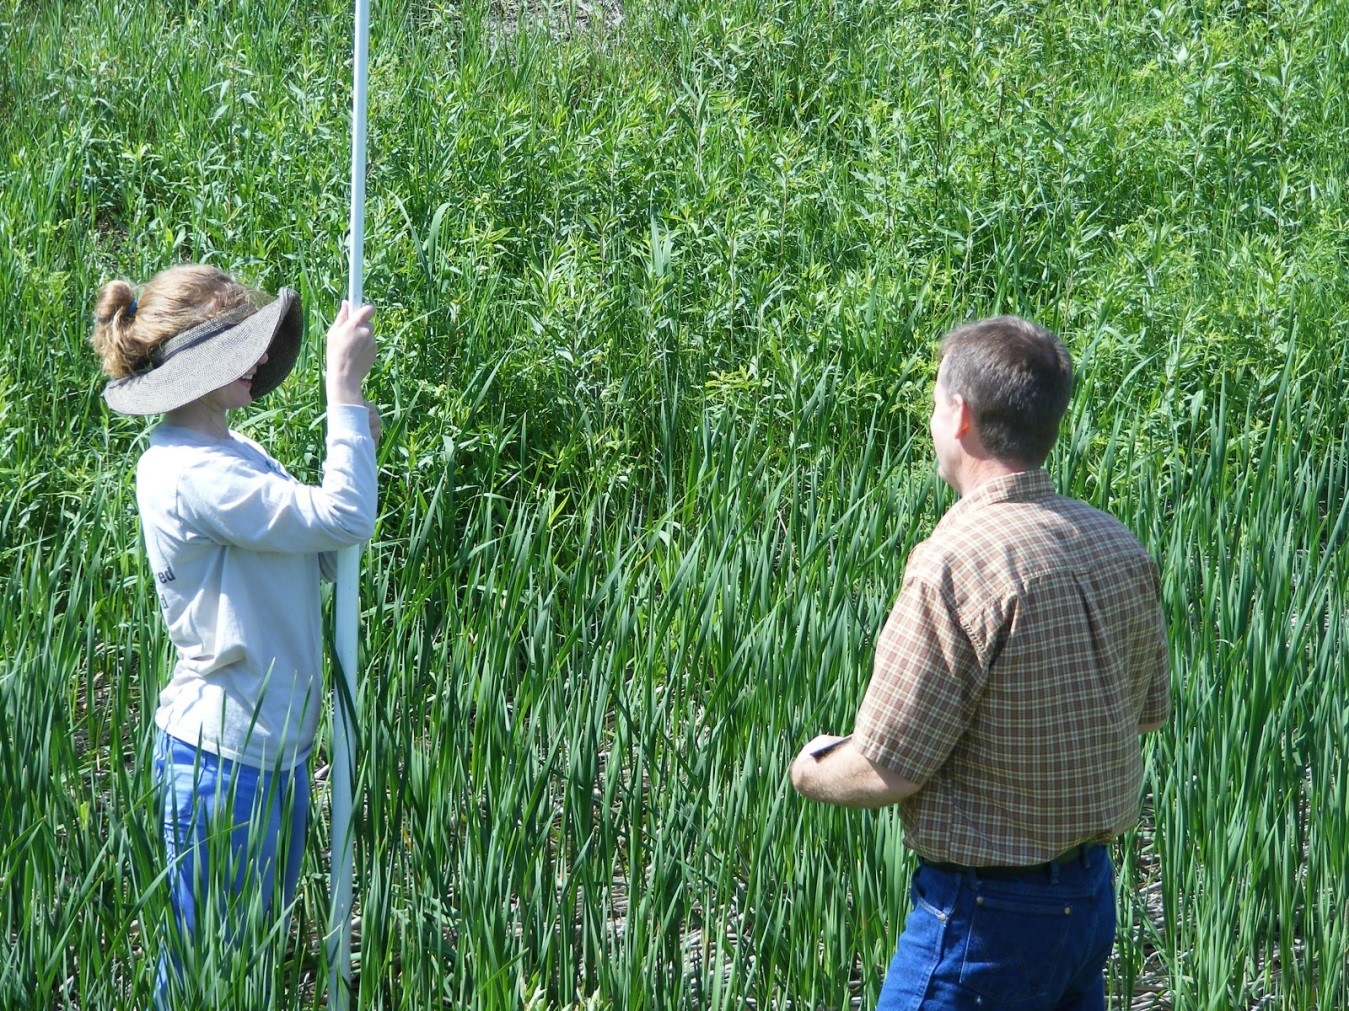 My supervisor Bryan Malone teaching me how to survey using a rod and laser.